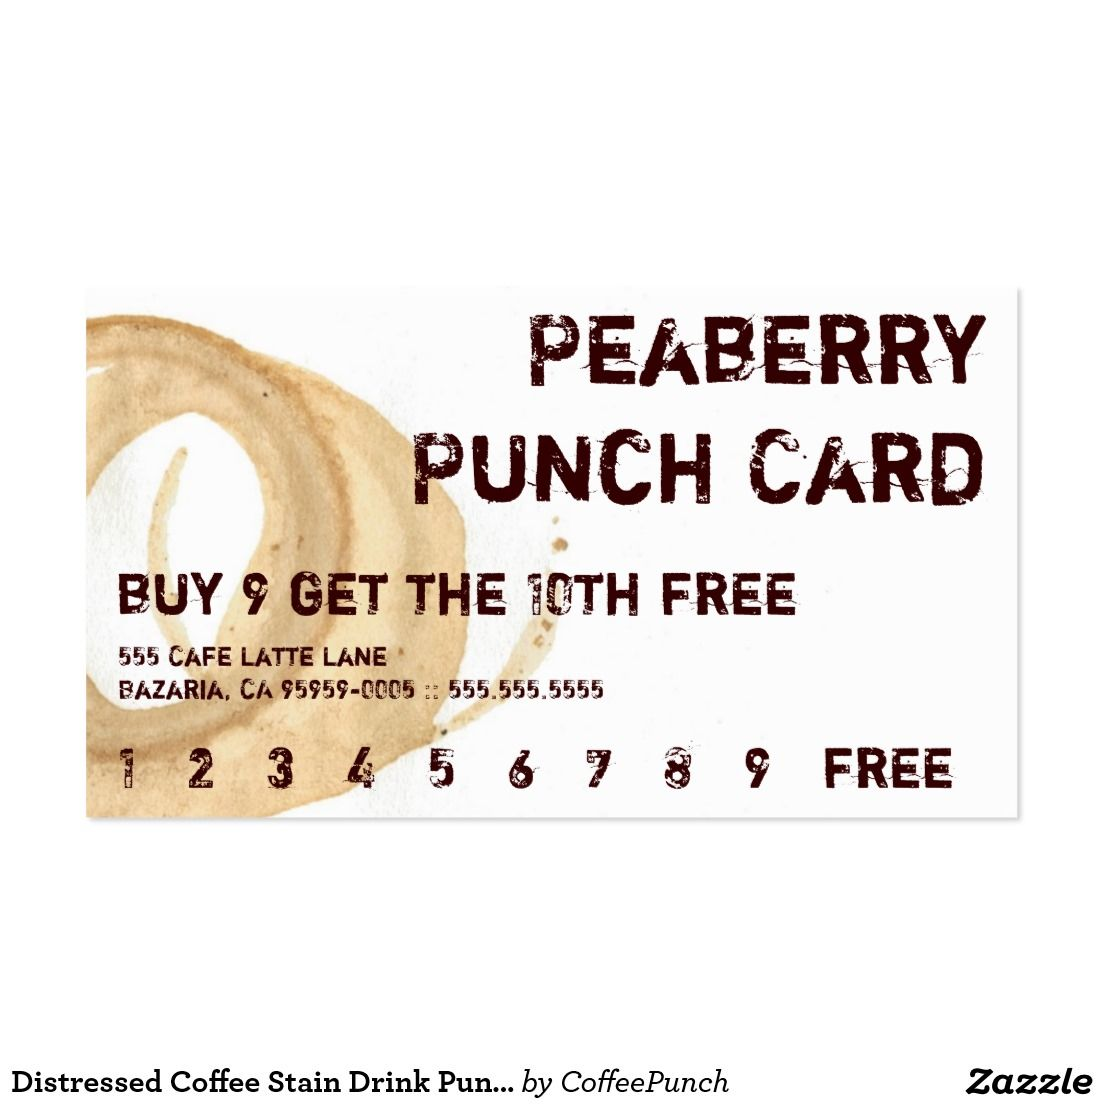 distressed coffee stain drink punchcard business card | stuff sold